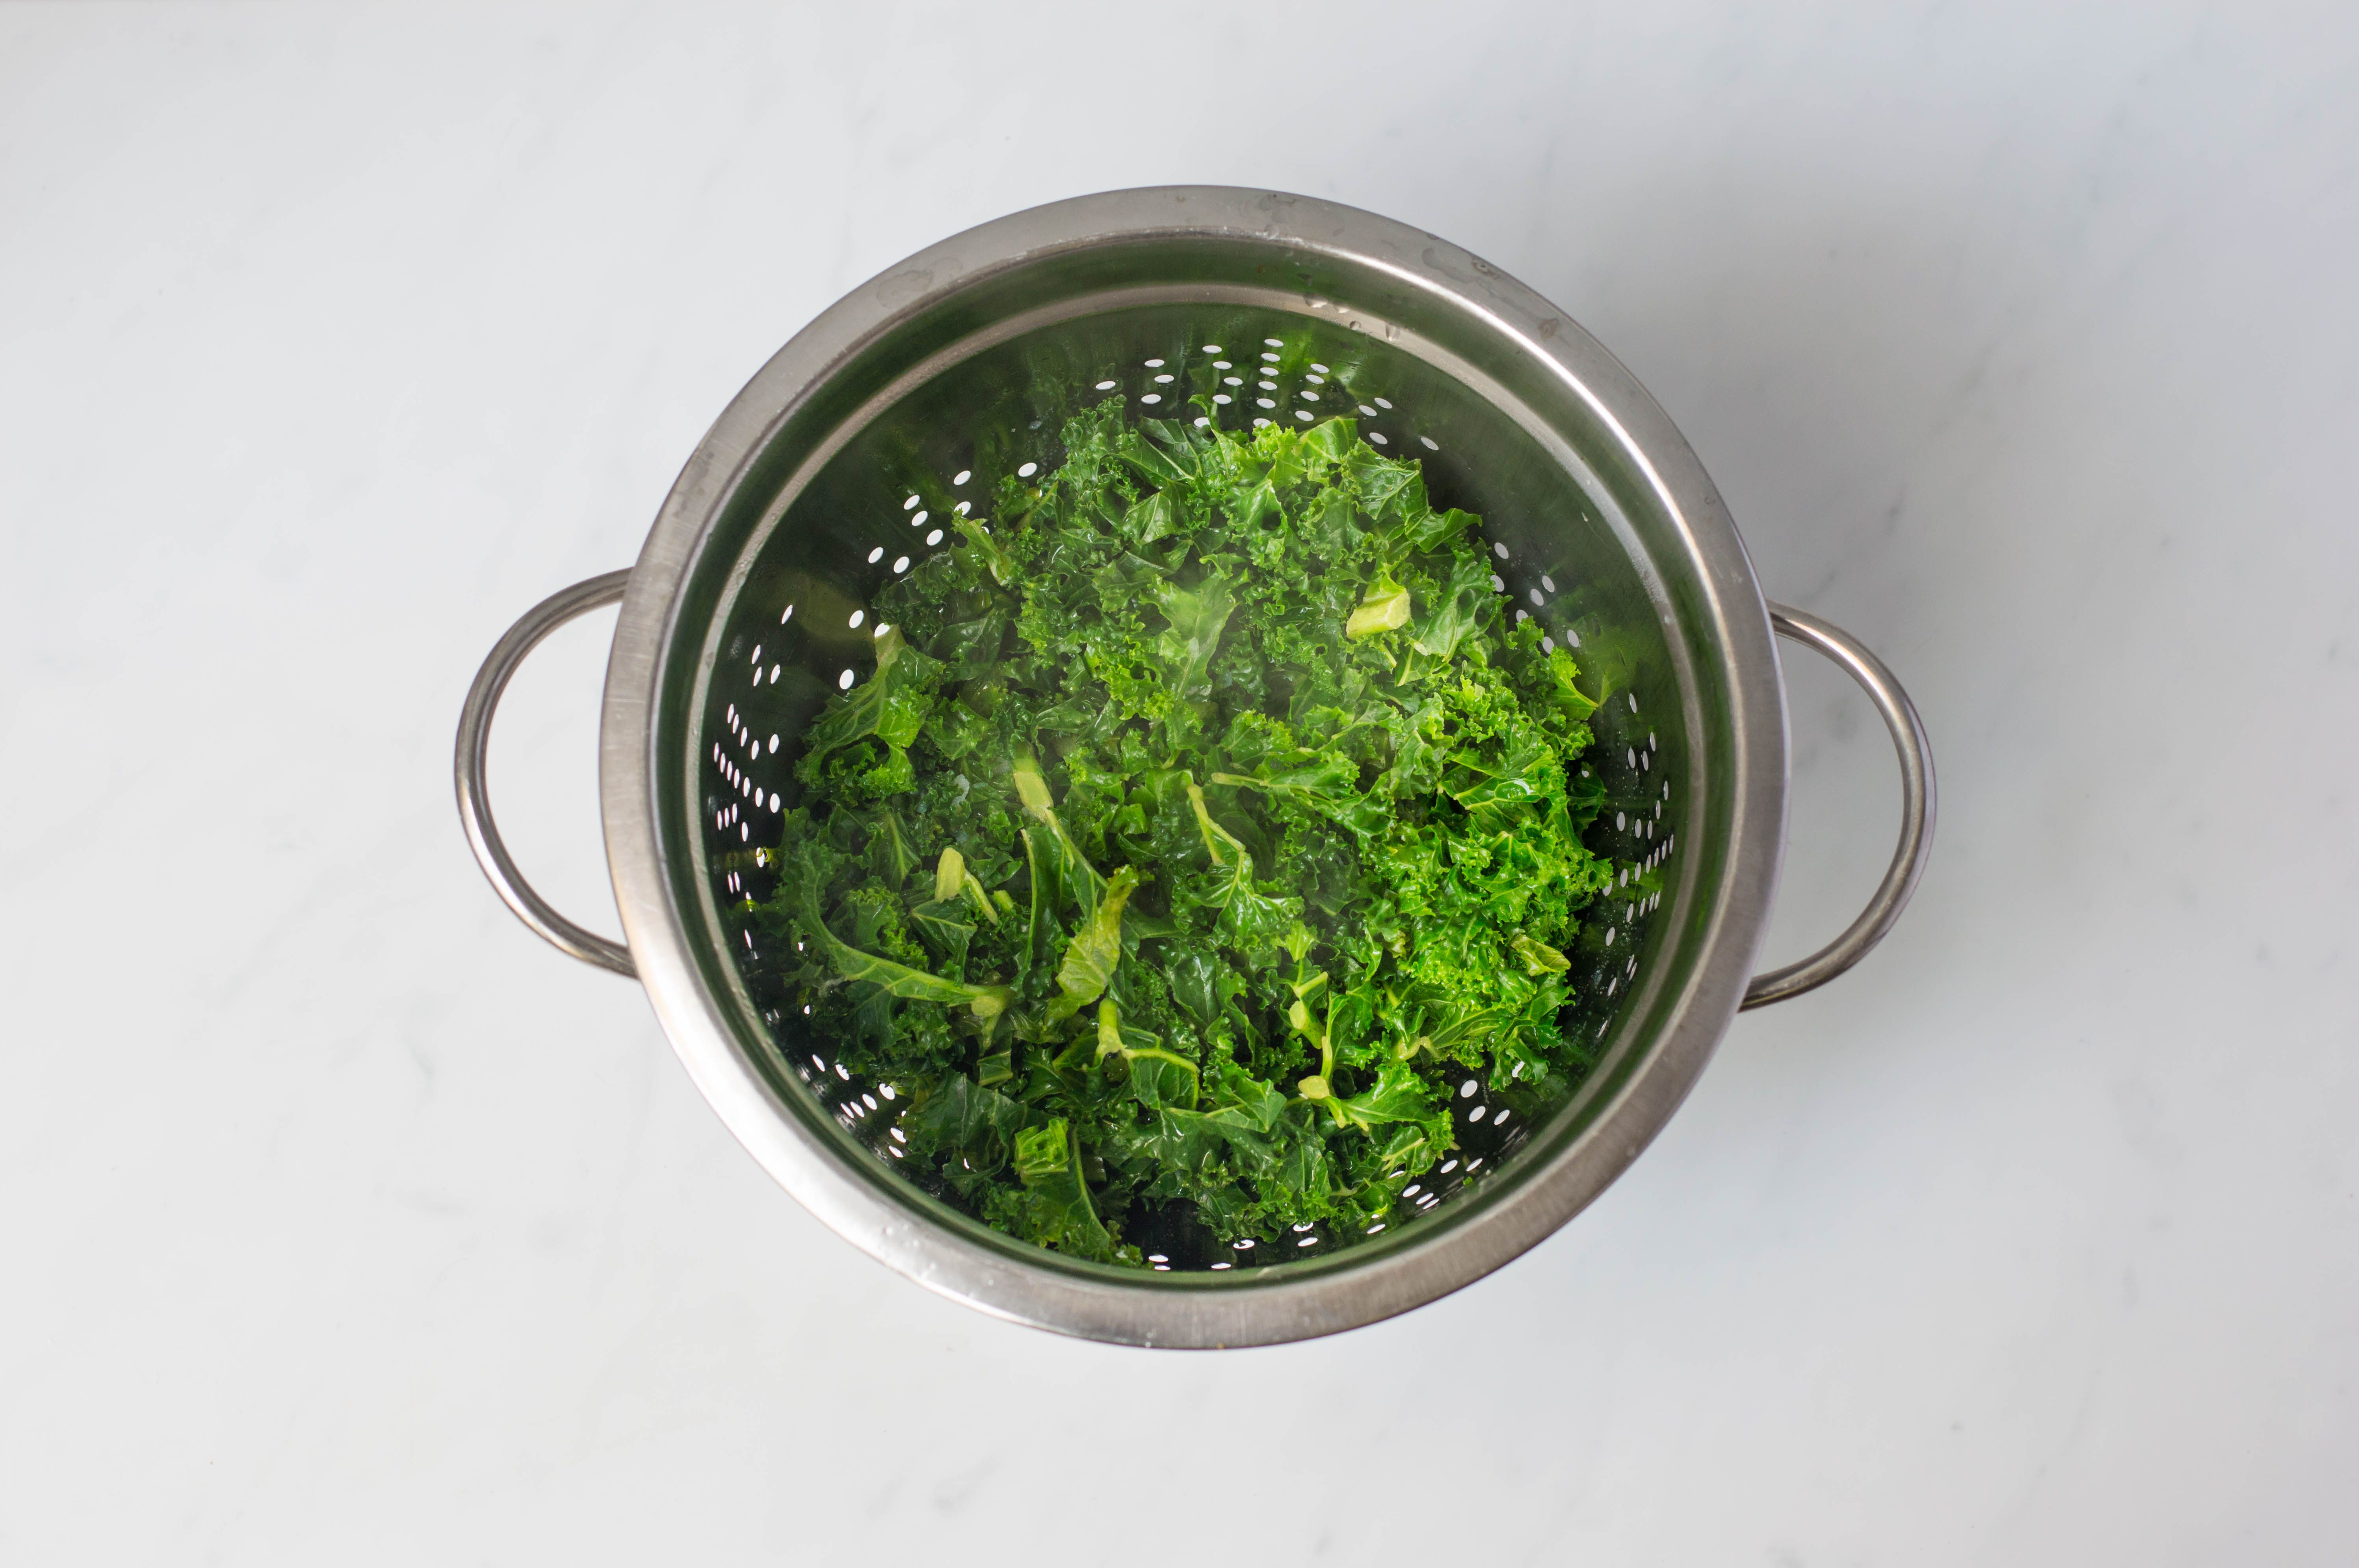 Draining the curly kale